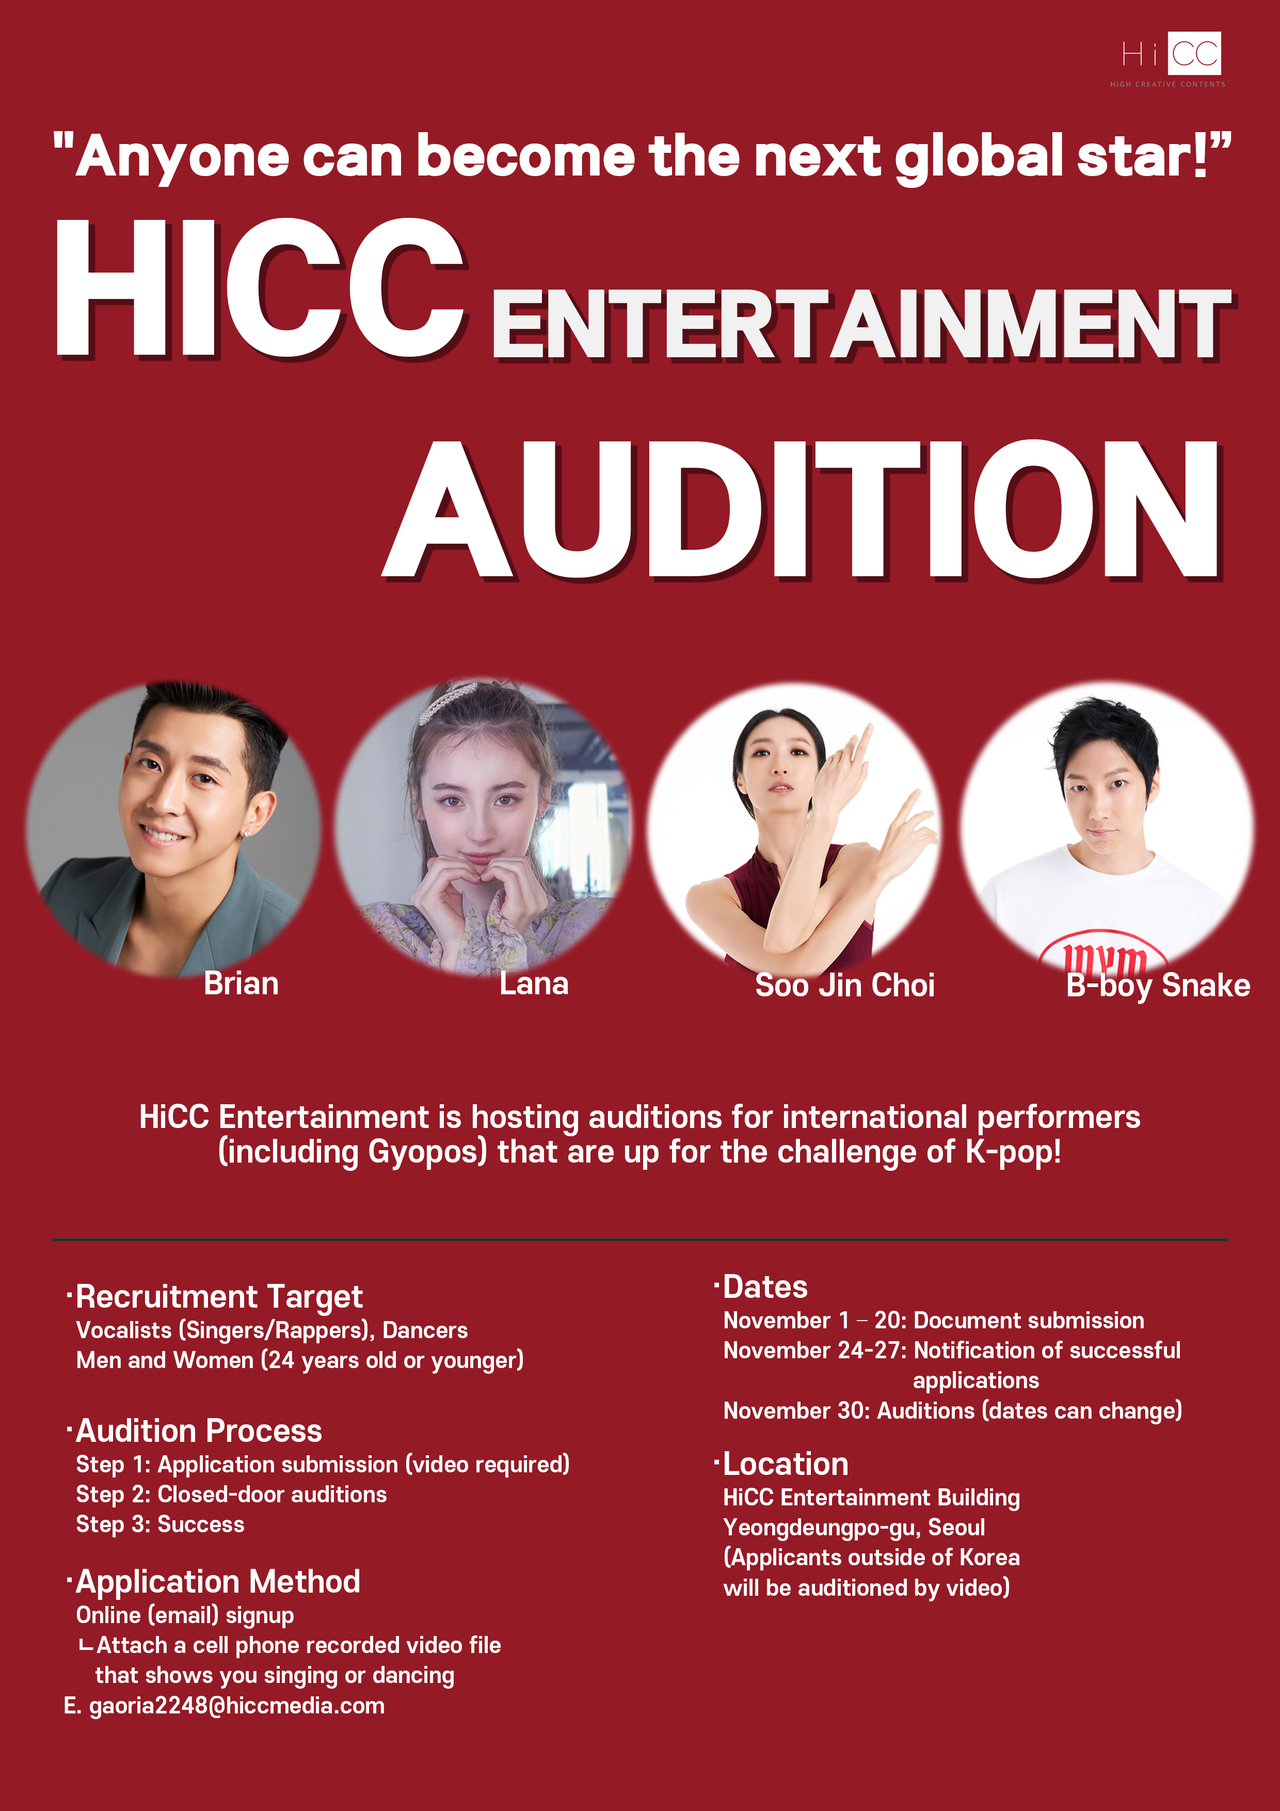 [Audition] HiCC Entertainment Audition Starts This November